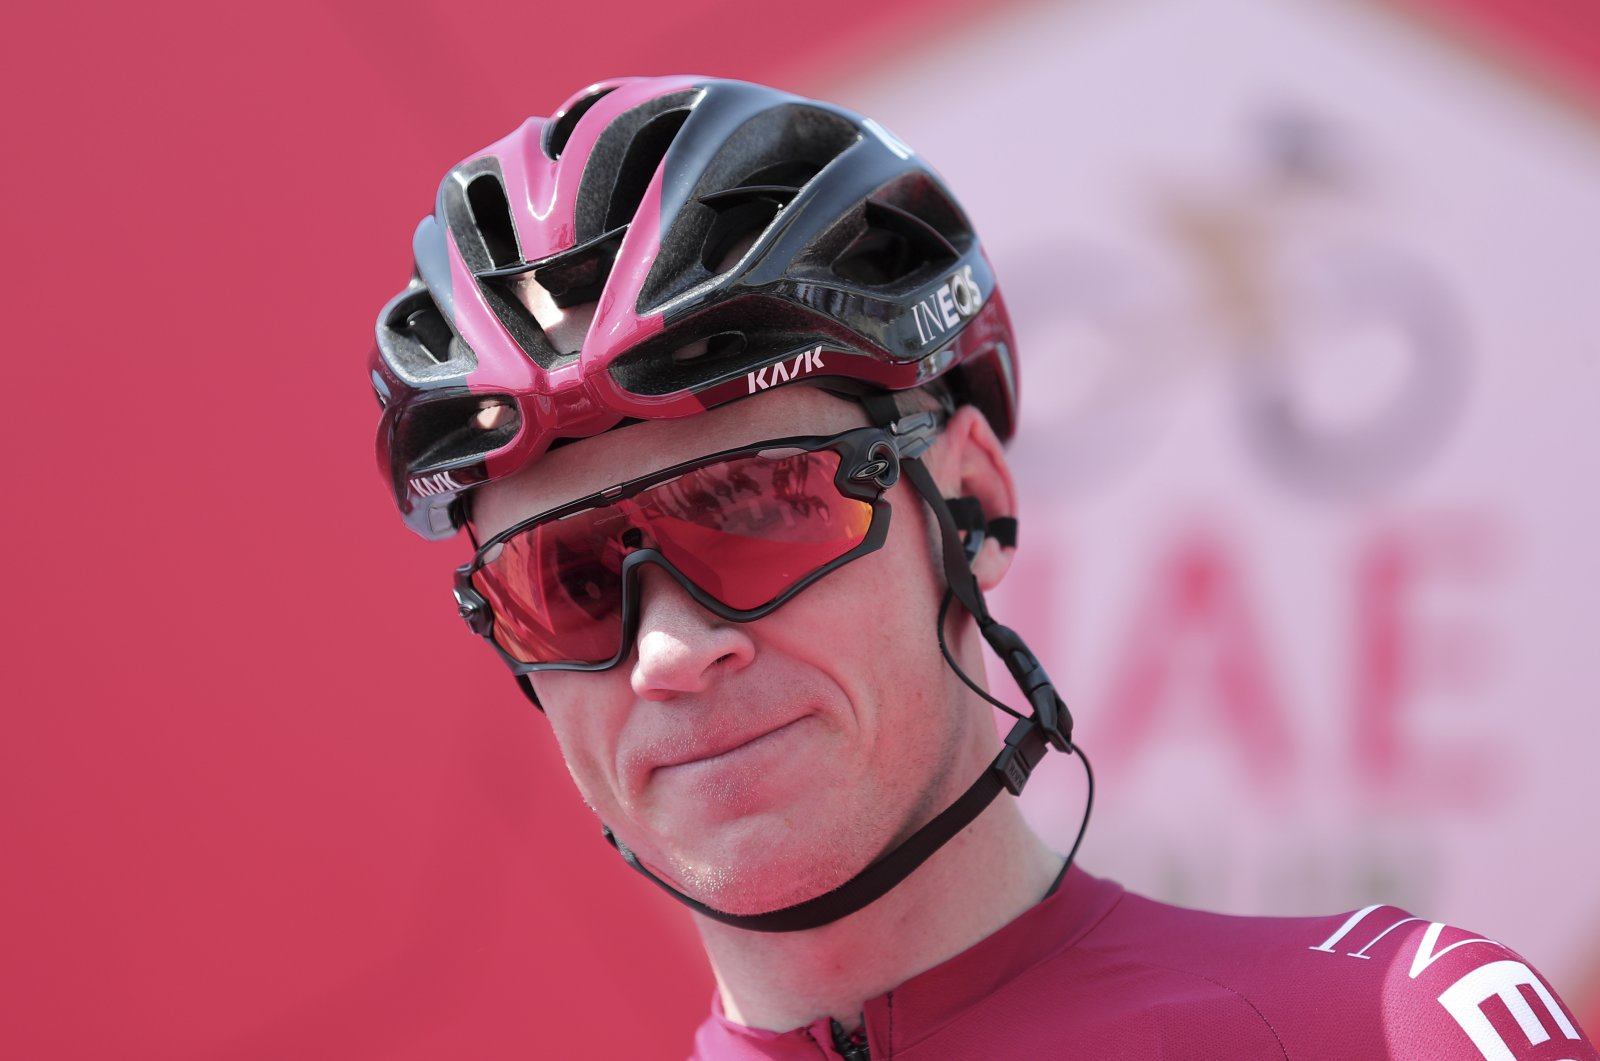 Chris Froome during a cycling tour in Dubai, United Arab Emirates, Feb, 23, 2020. (AP Photo)